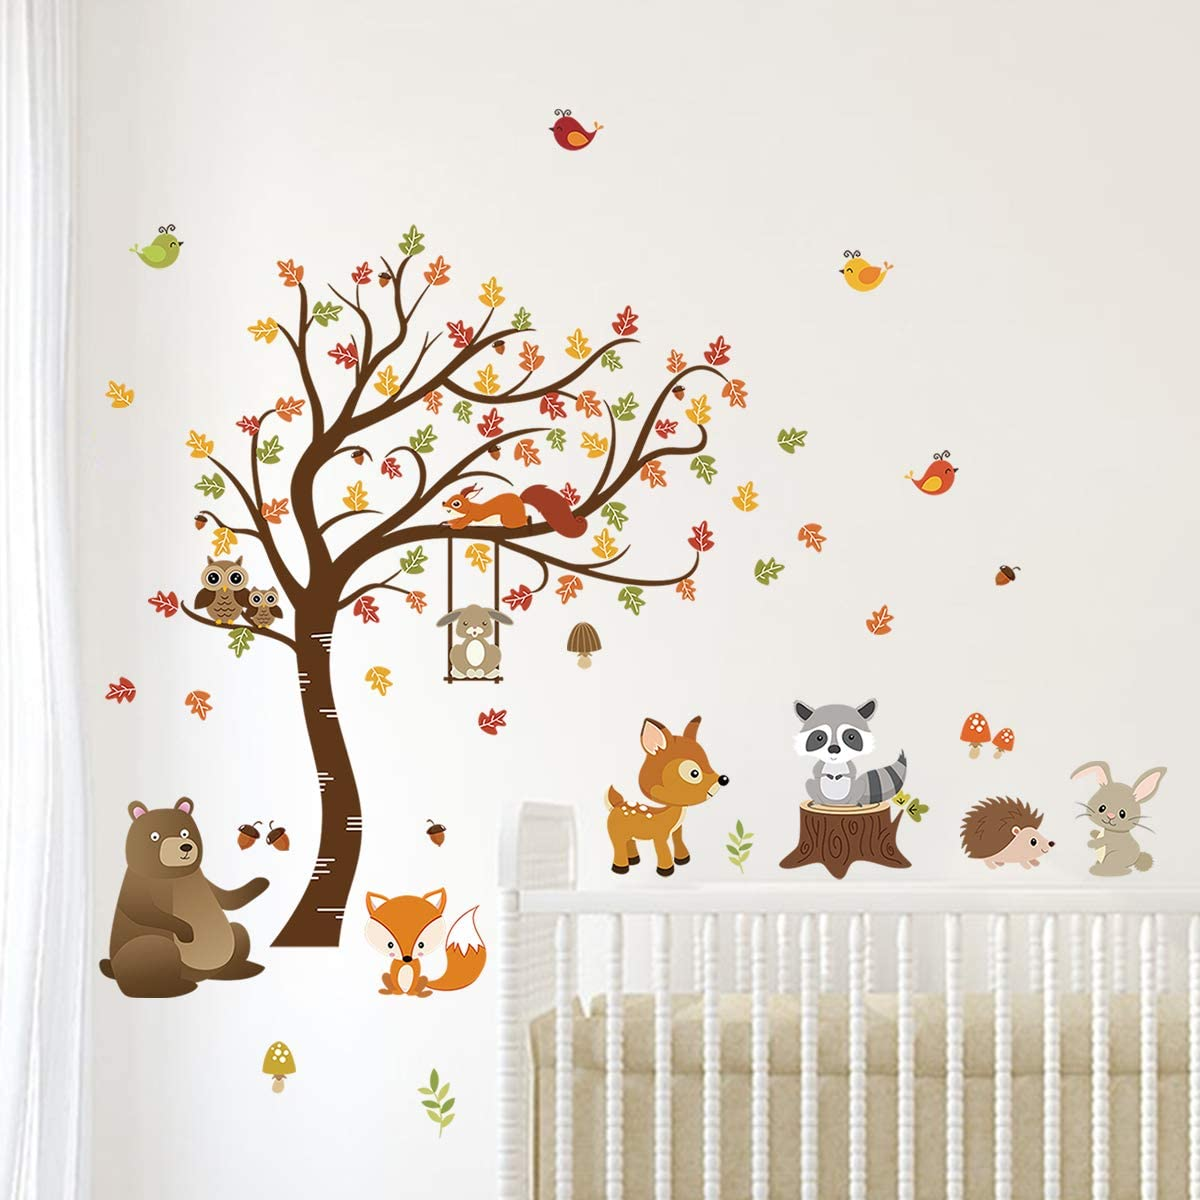 Bear and Tree Decal Sticker Woodland Animals Sticker Pack 172 Woodland Decor for Kids Rooms or Baby Nursery Woodland Wall Decals